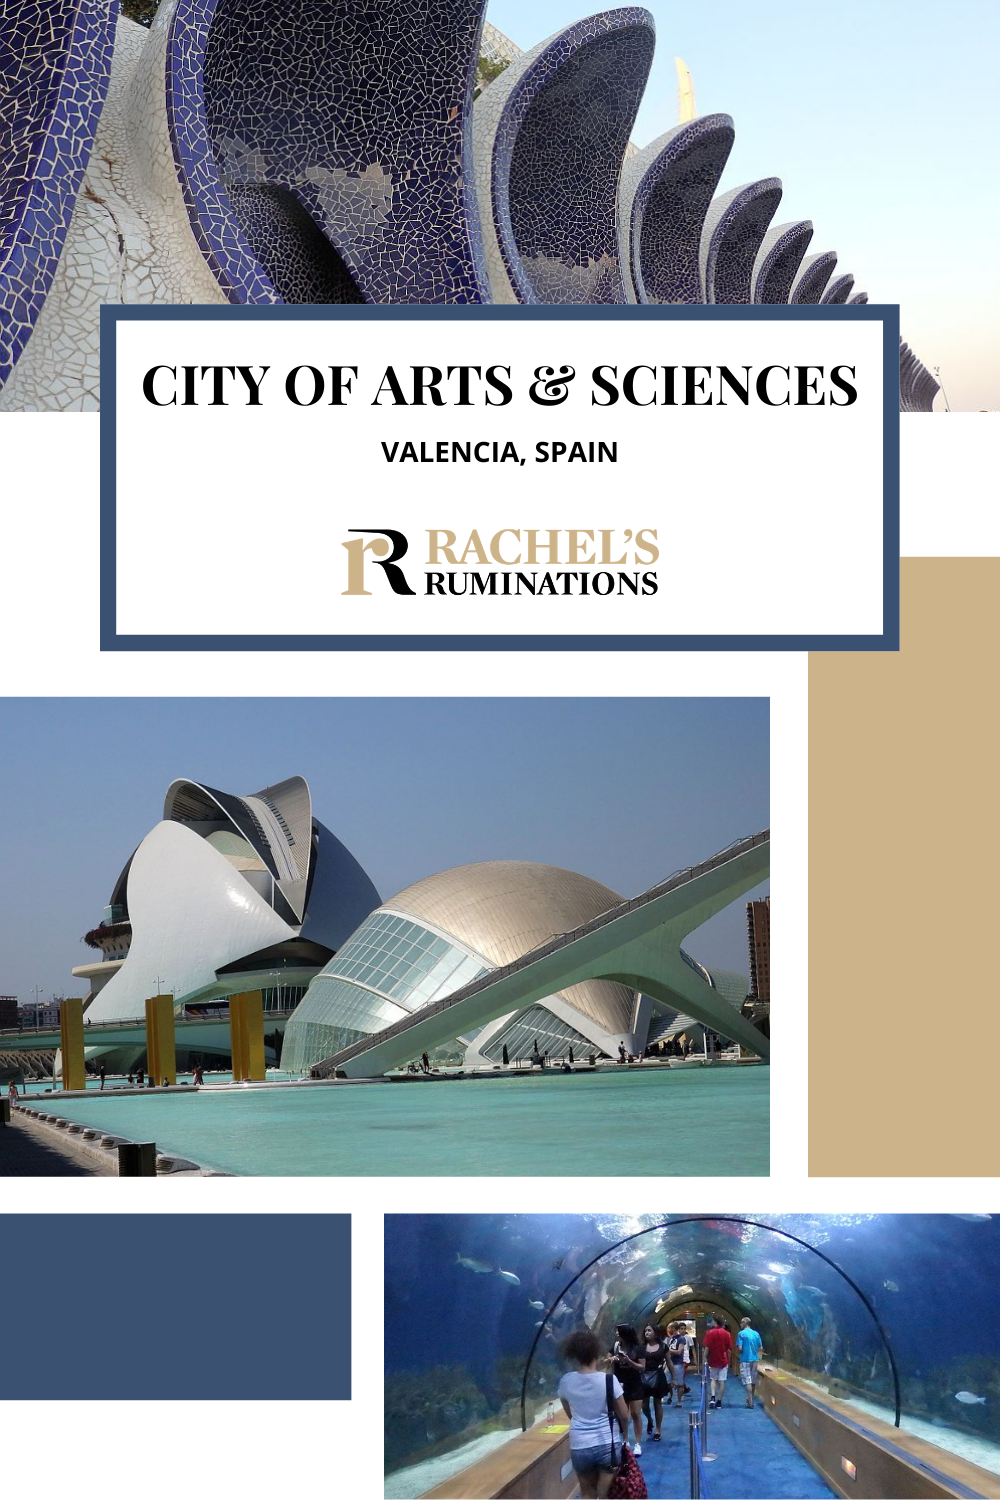 The City of Arts and Sciences in Valencia, Spain, is a place of futuristic architecture with a science museum, an aquarium, and much more. via @rachelsruminations